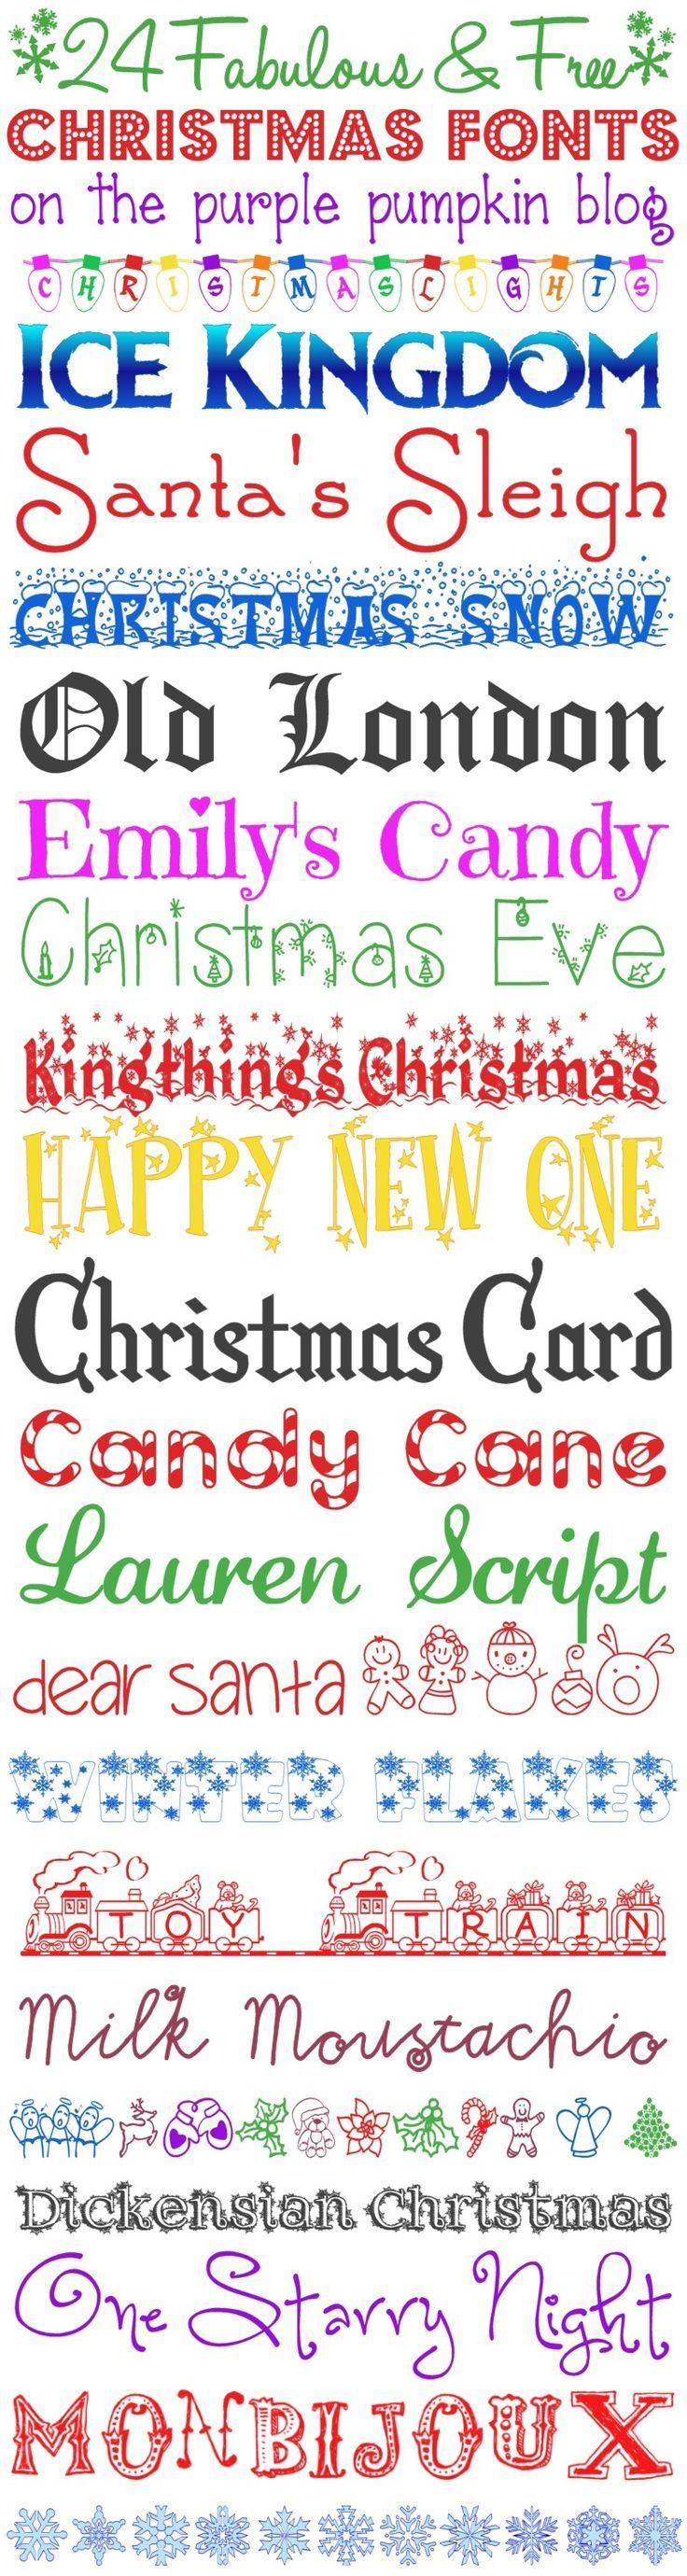 hight resolution of 24 fabulous and free christmas fonts for all your christmas and festive projects